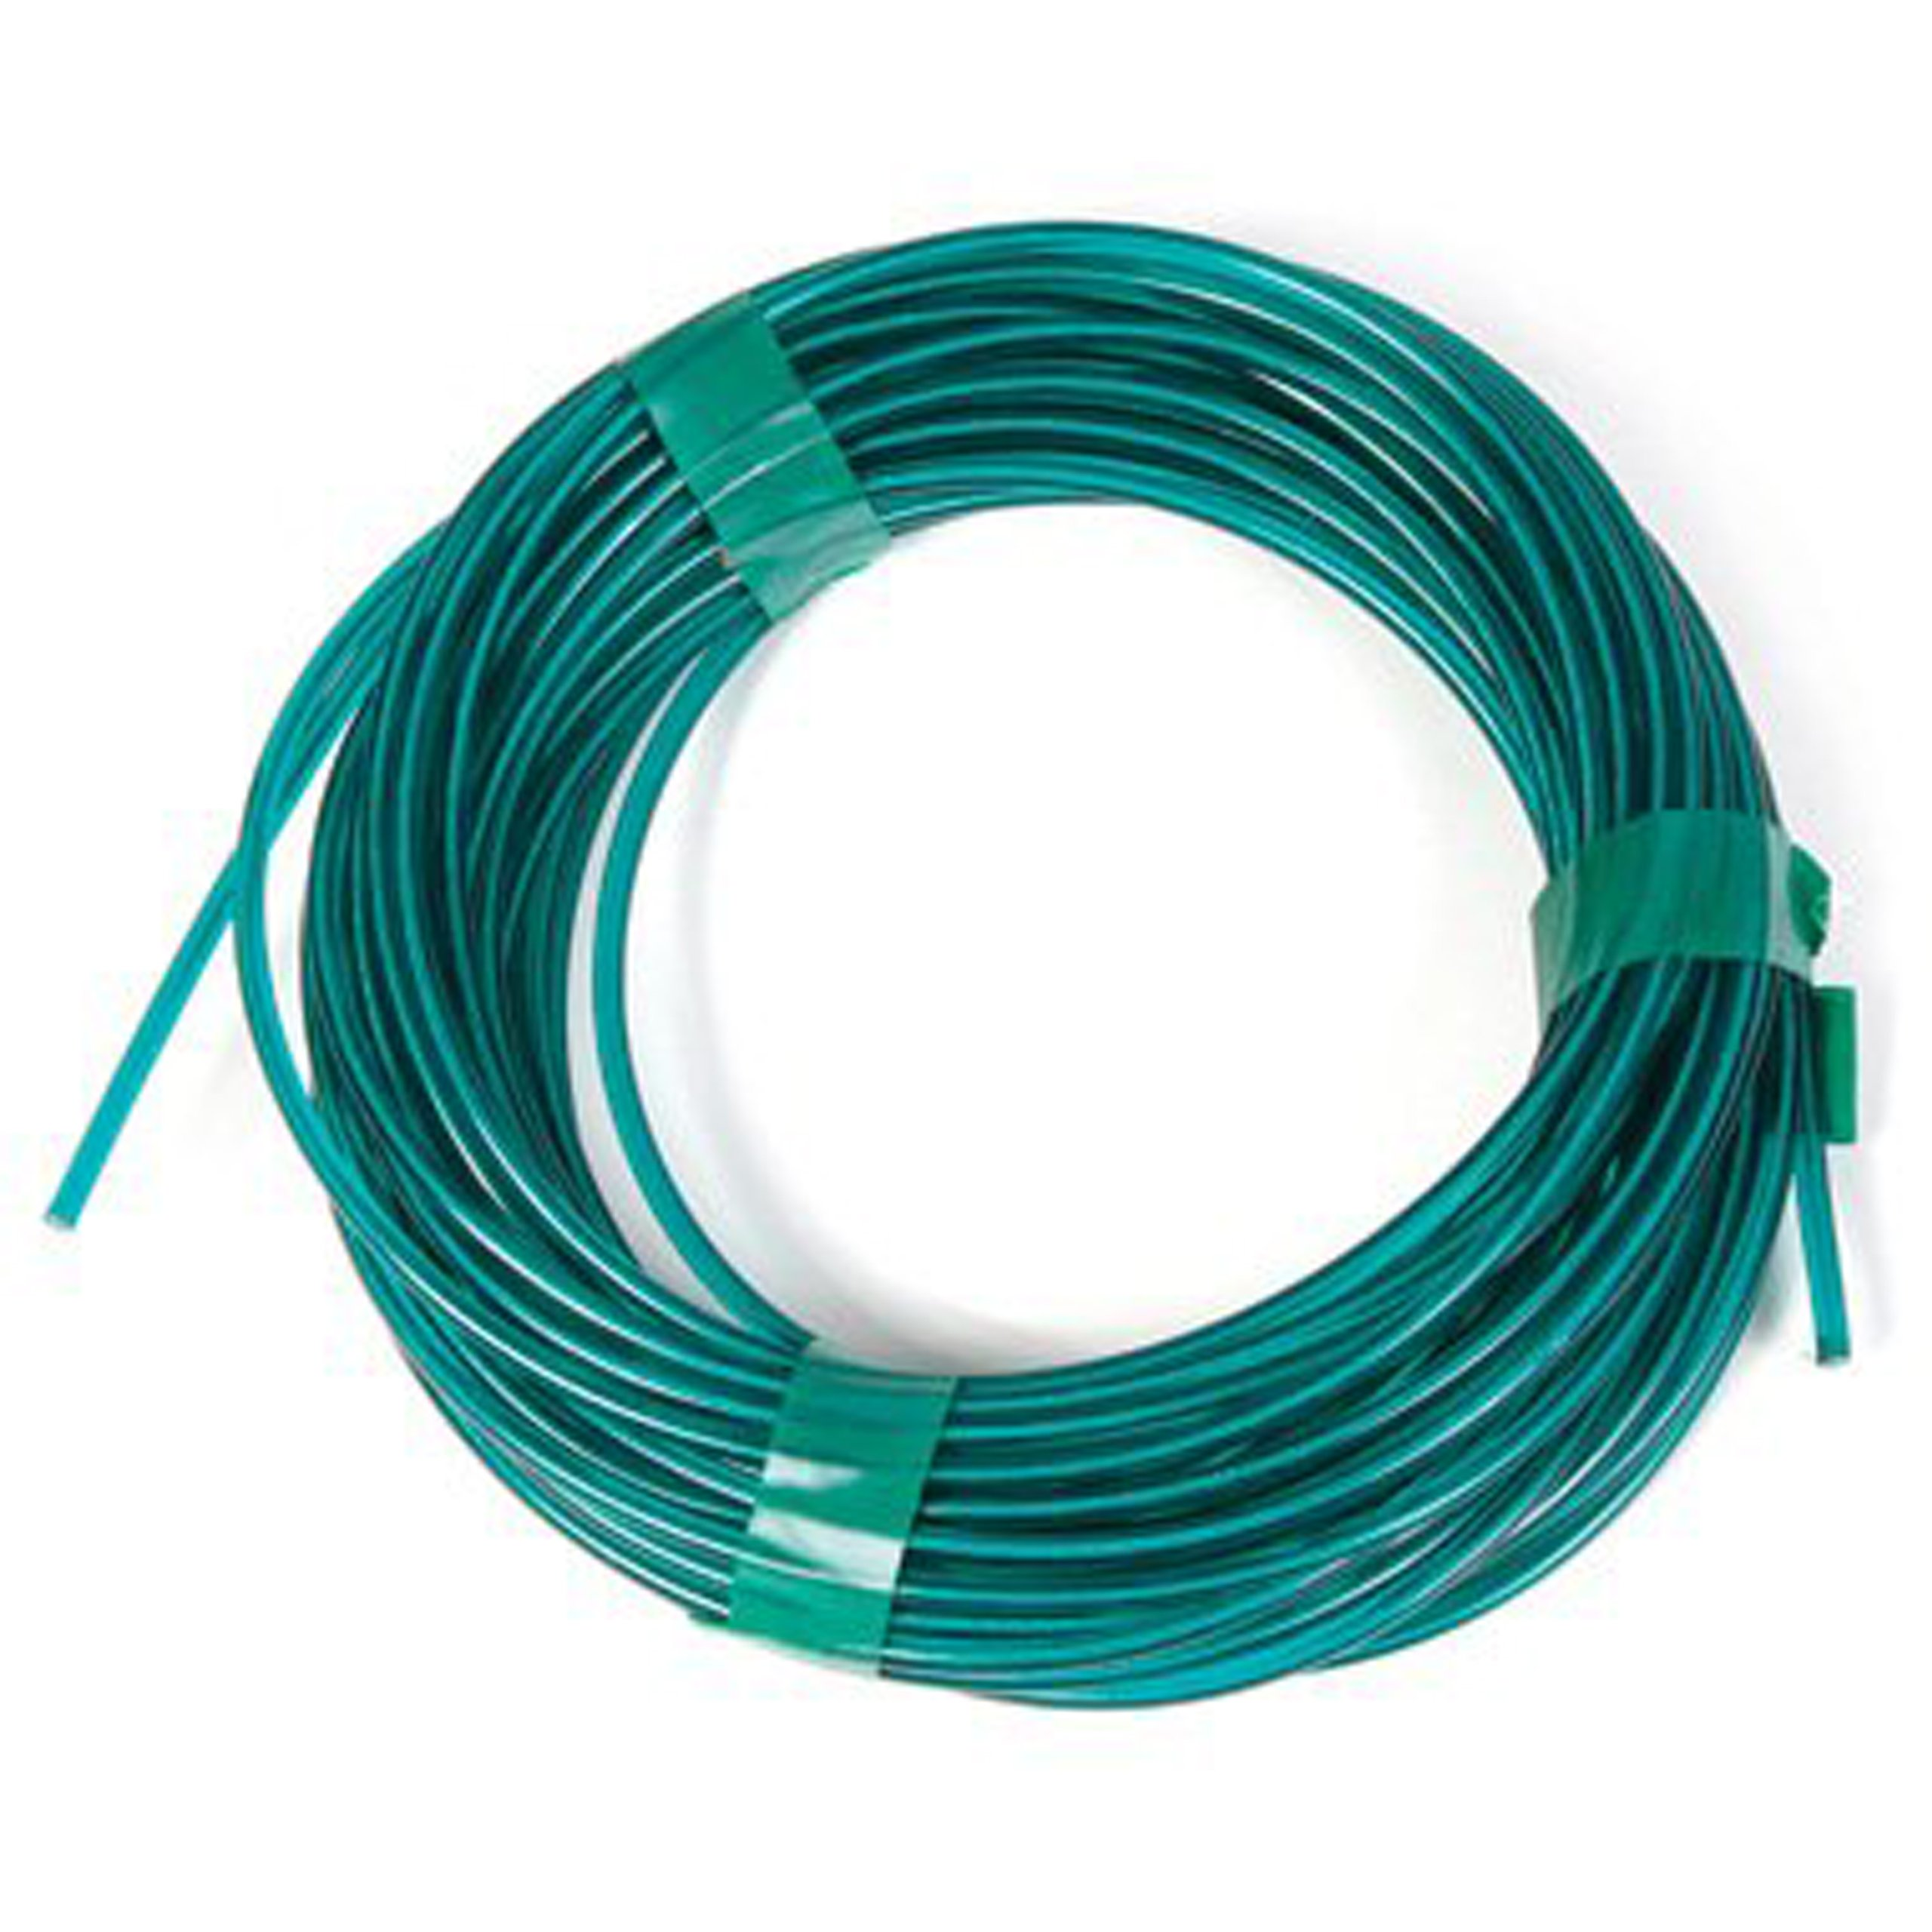 Buy Koch 5630515 No.5 by 50-Feet Vinyl Coated Wire Clothesline ...